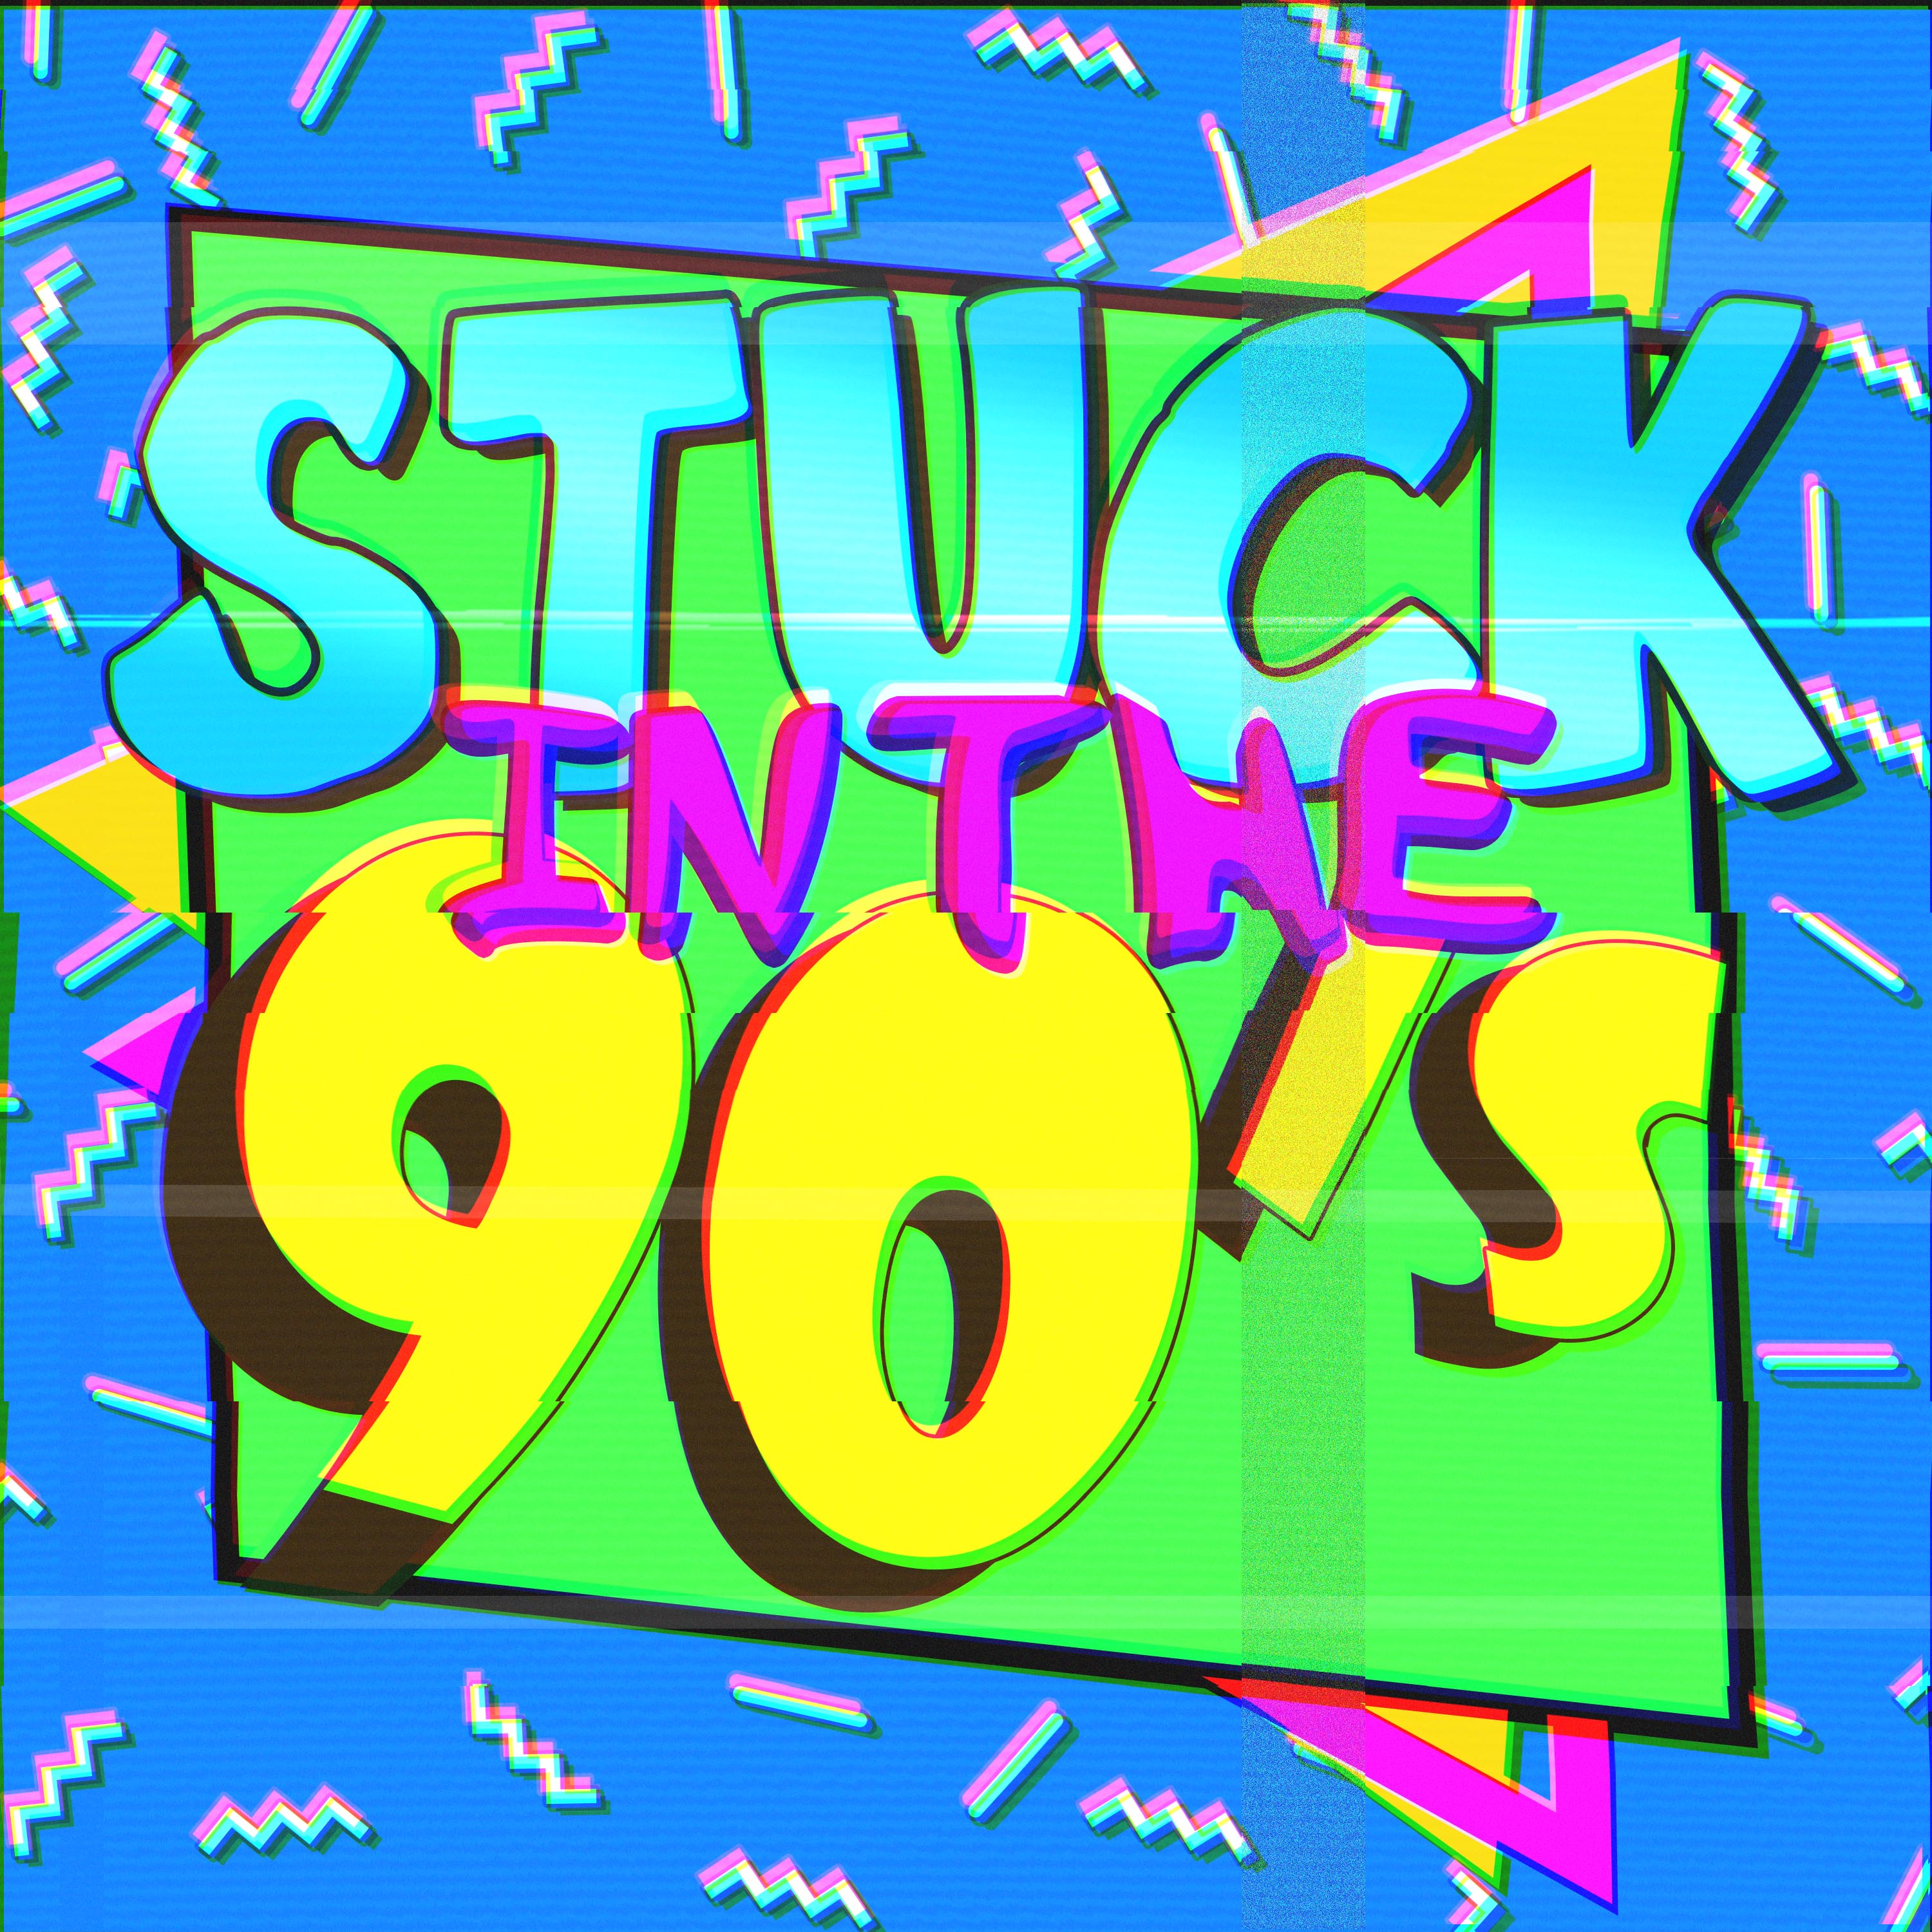 Stuck in the 90s